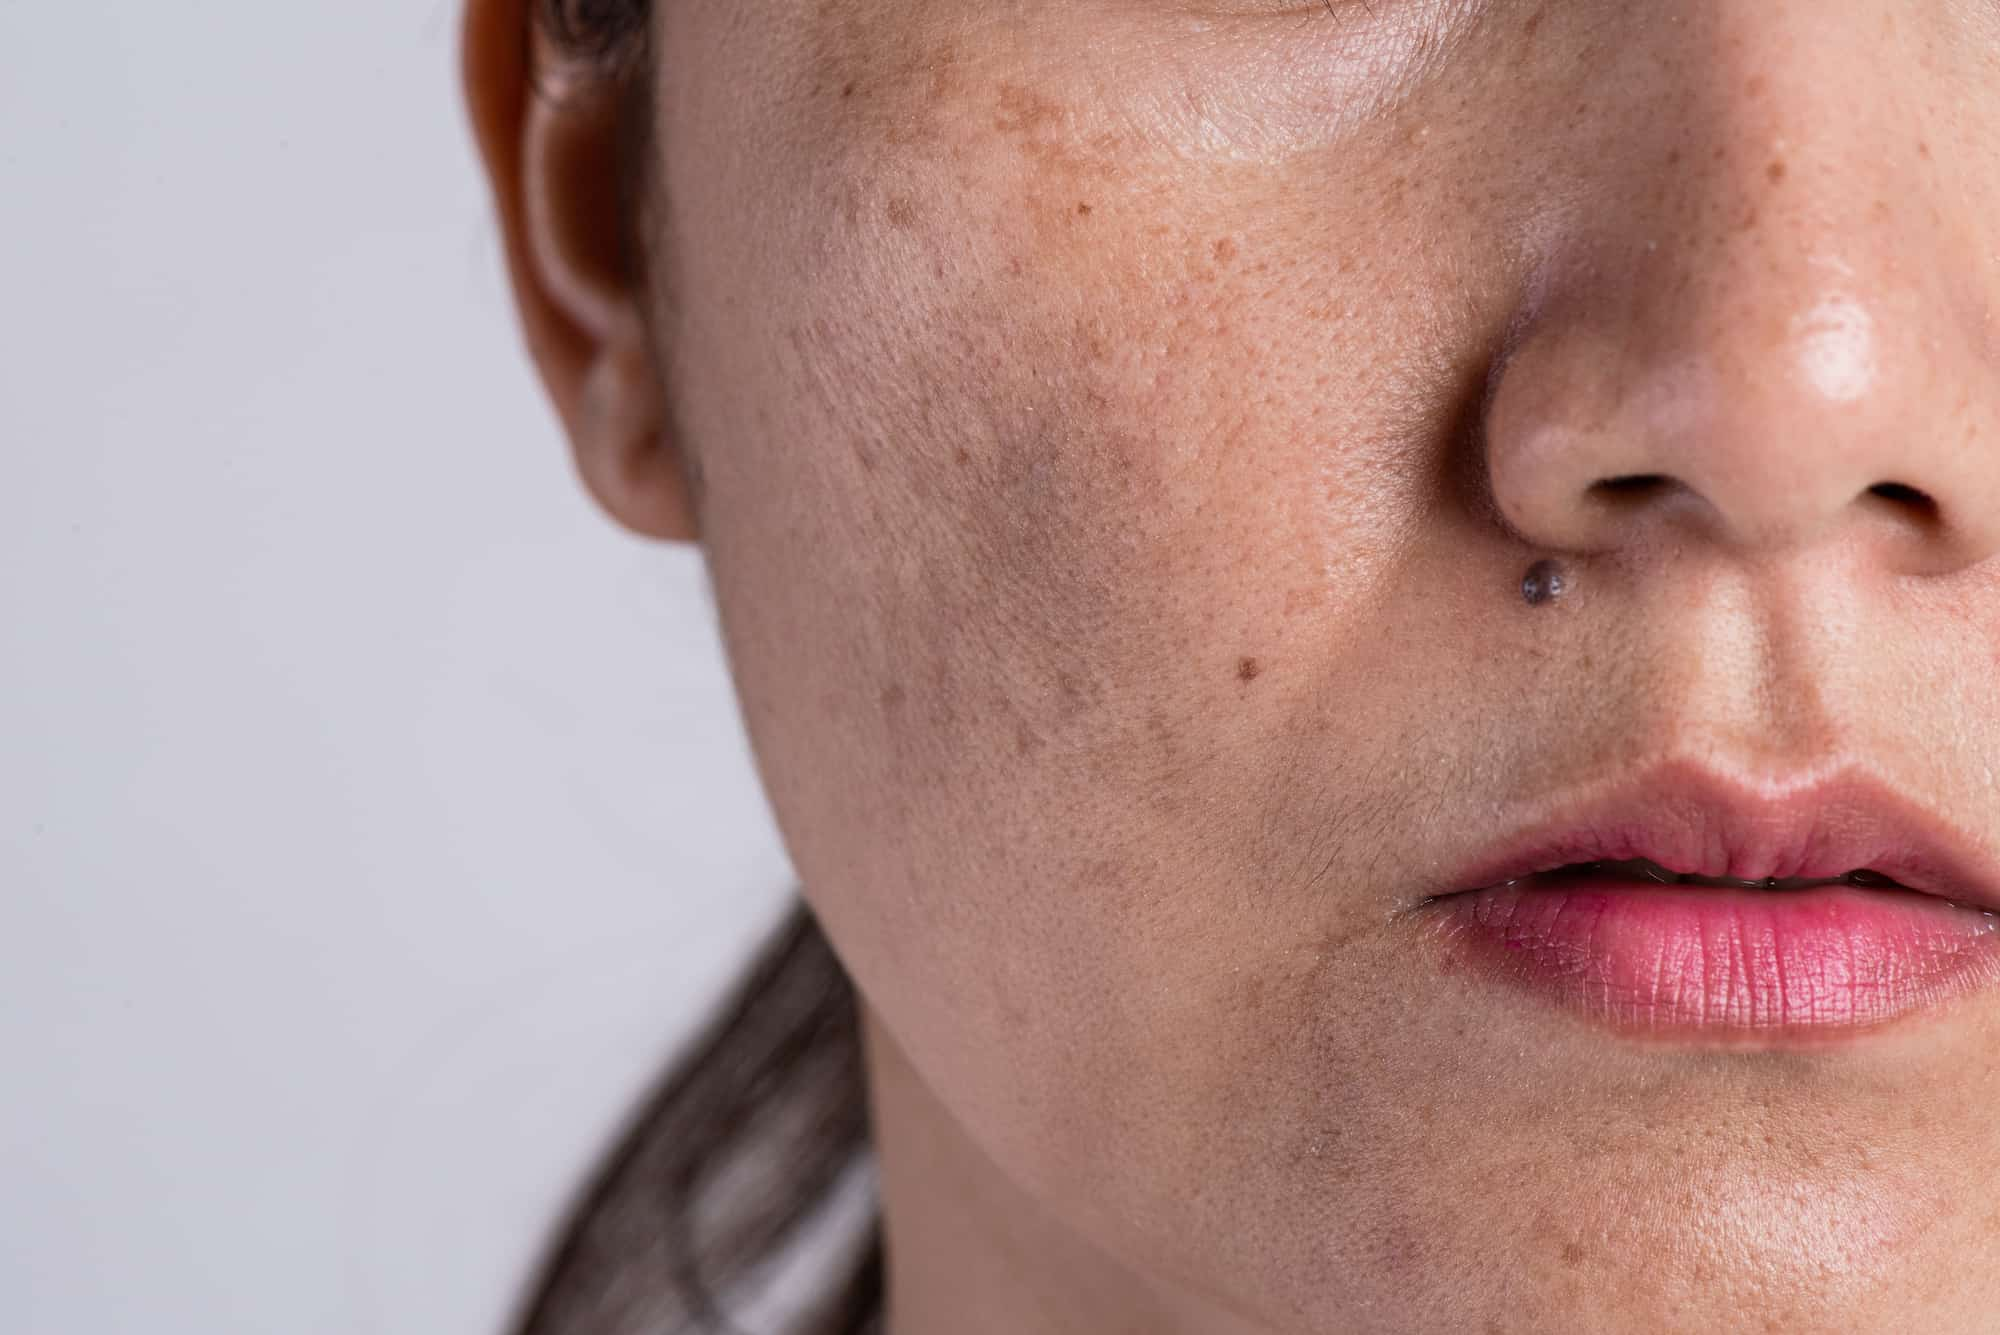 Treatments for skin and acne scars at Kuala lumpur